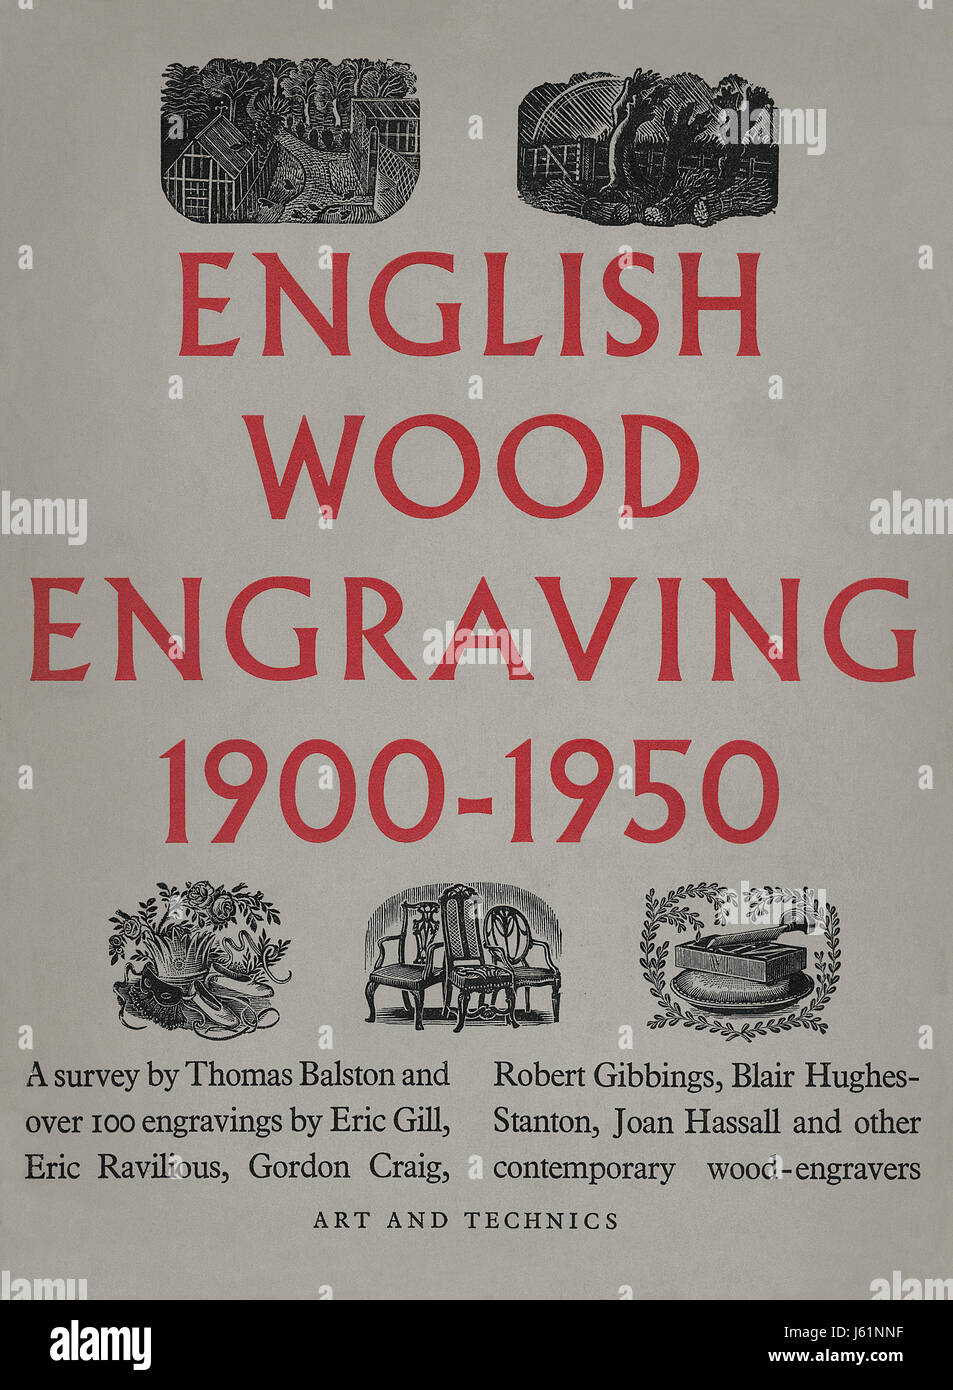 Front cover of the book 'English Wood Engraving 1900-1950' by Thomas Balston. Published by Art and Technics - Stock Image